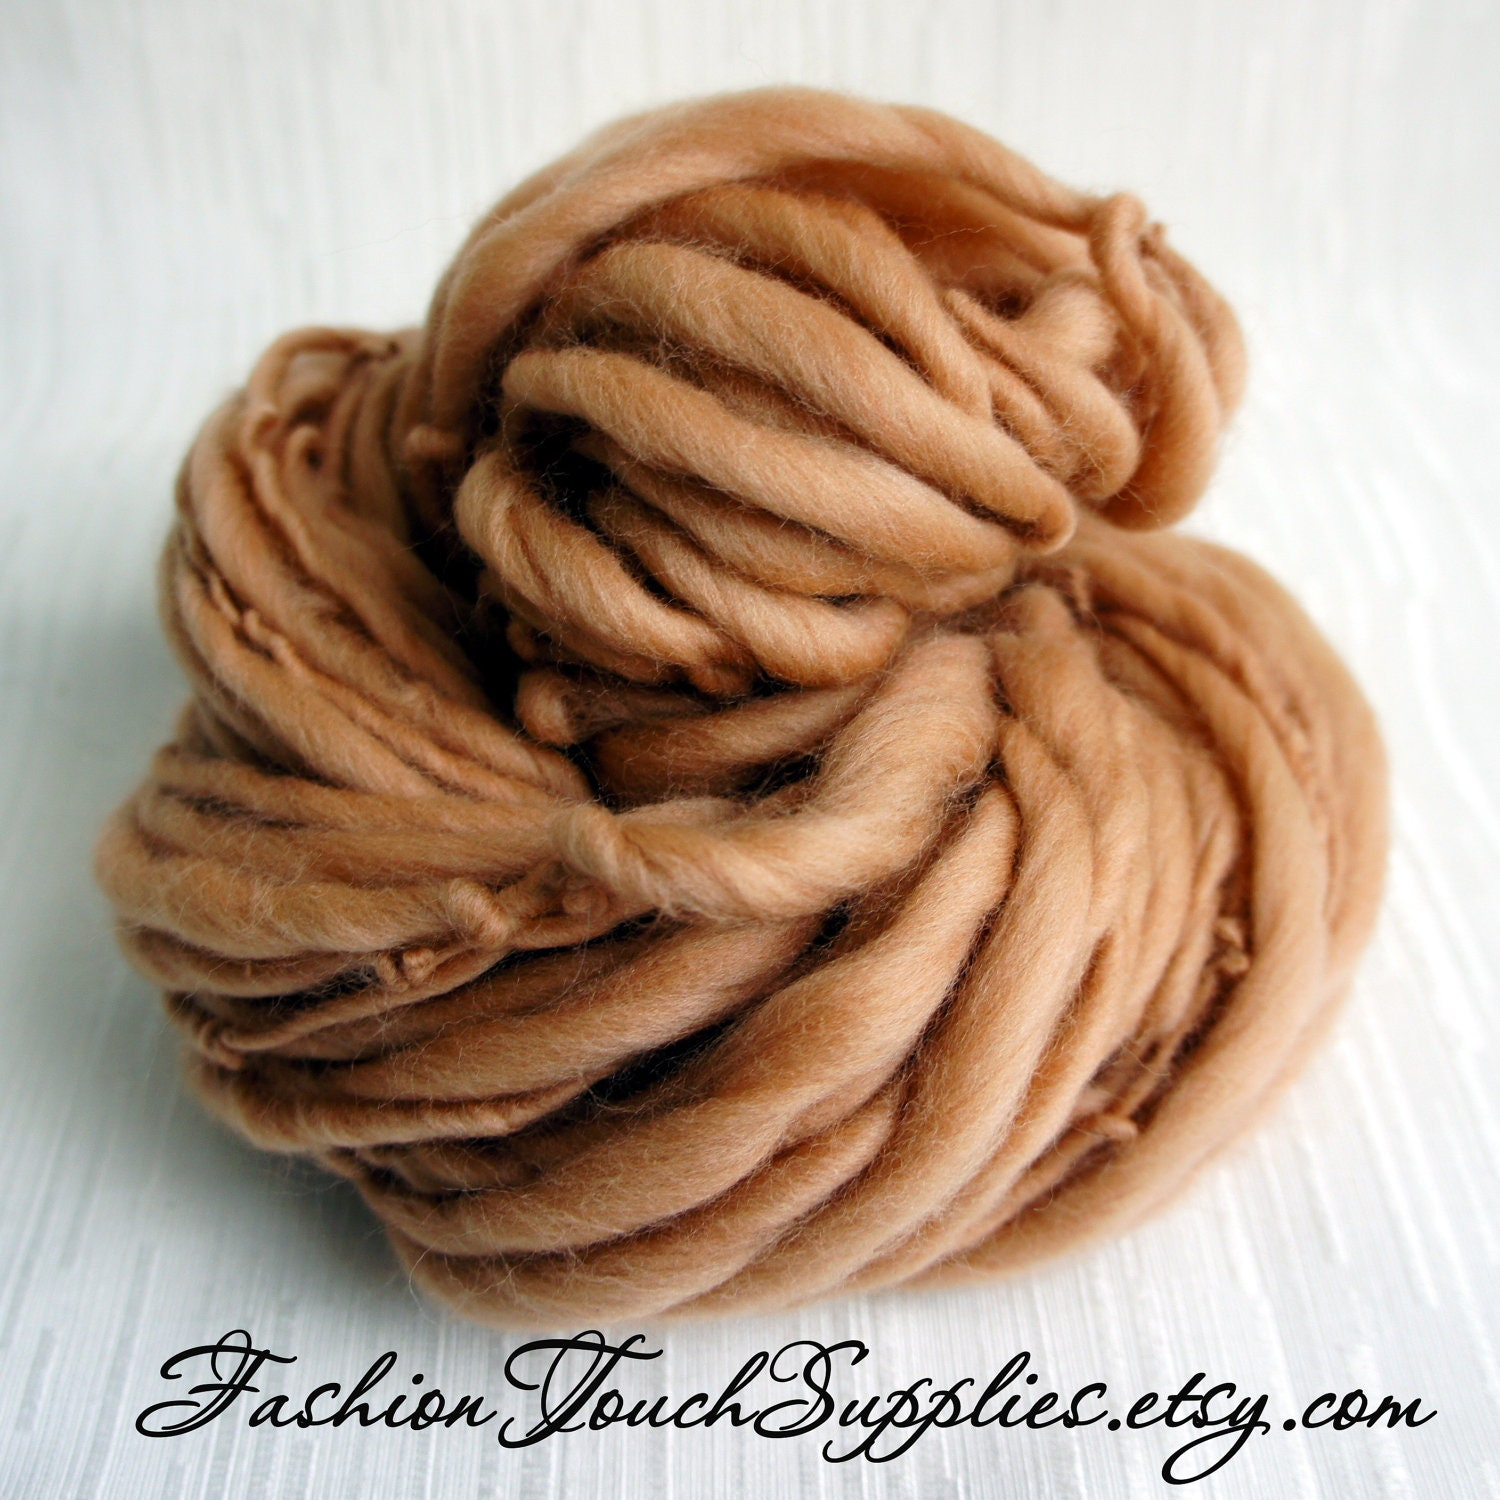 Knitting With Handspun Yarns Patterns : Sale bulky handspun yarn almond twist thick and thin